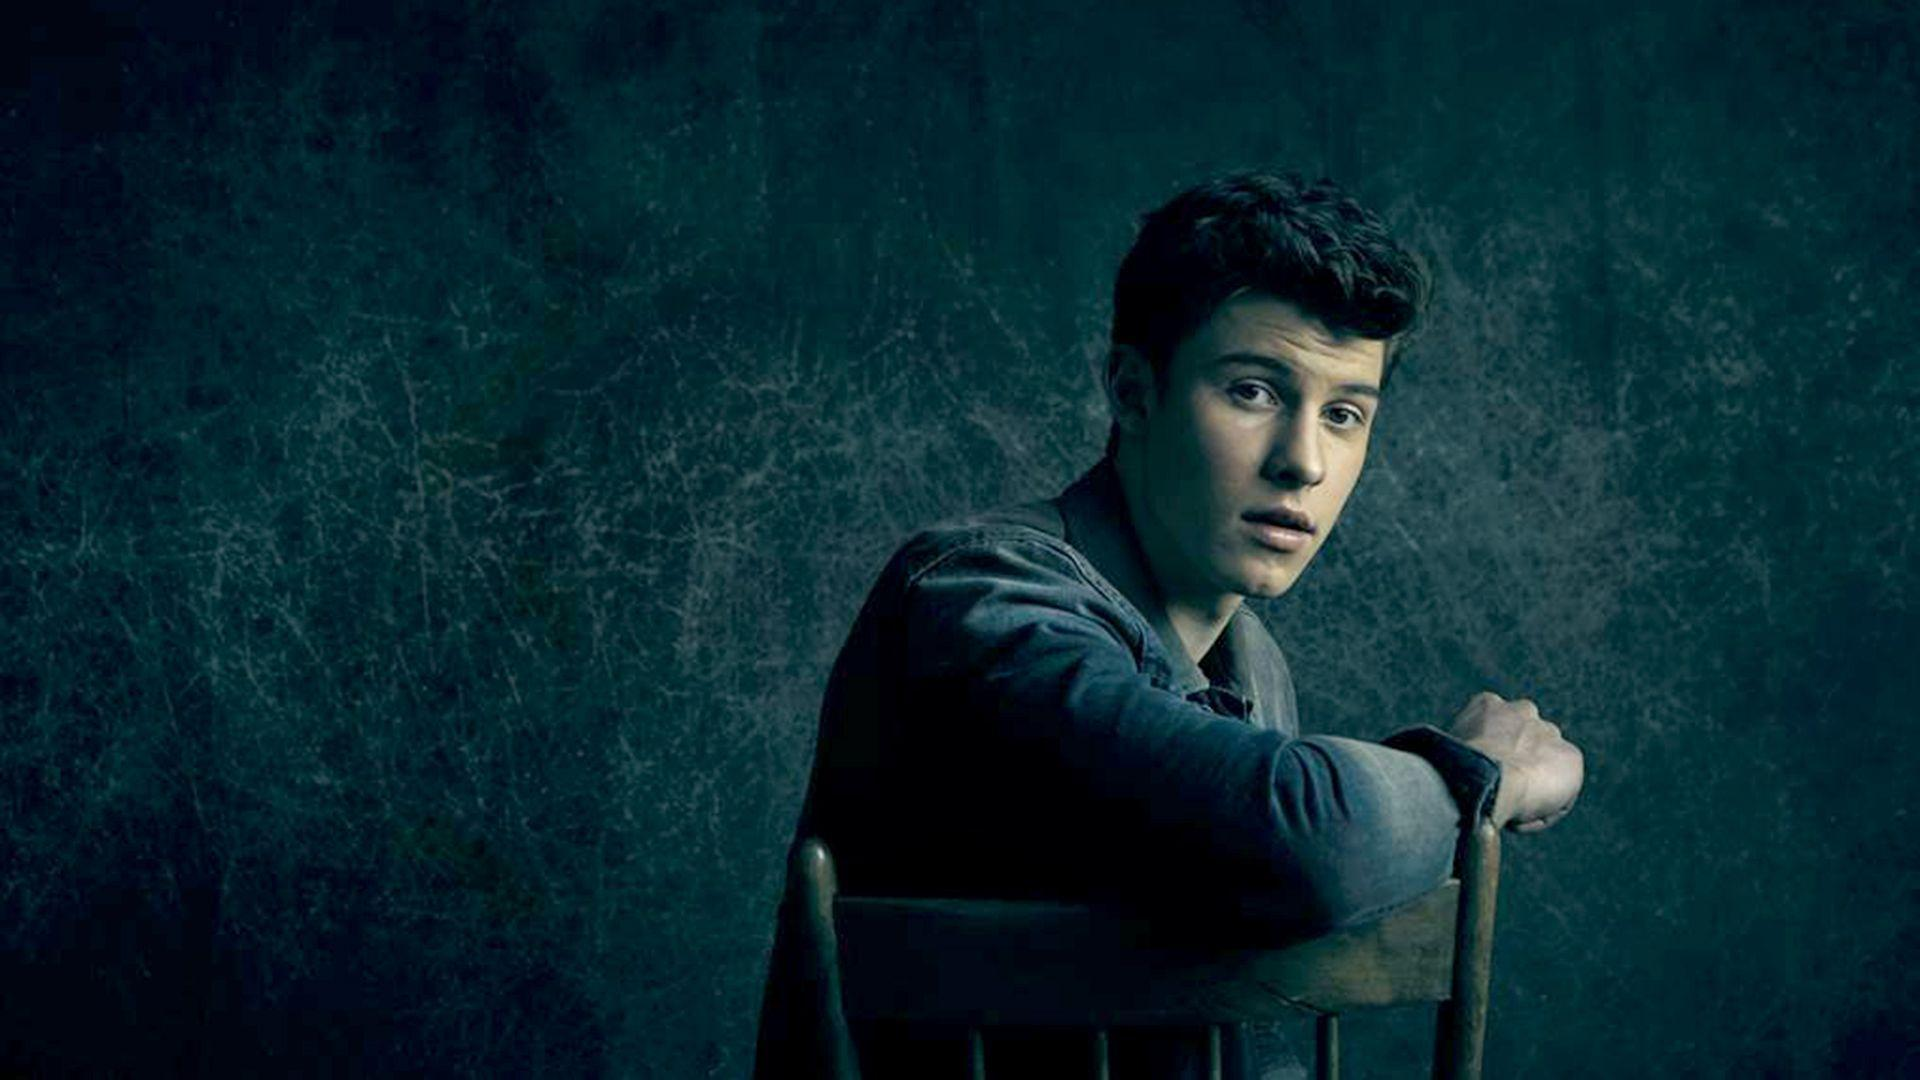 Shawn Mendes Wallpapers HD Resolution Iphone Tumblr